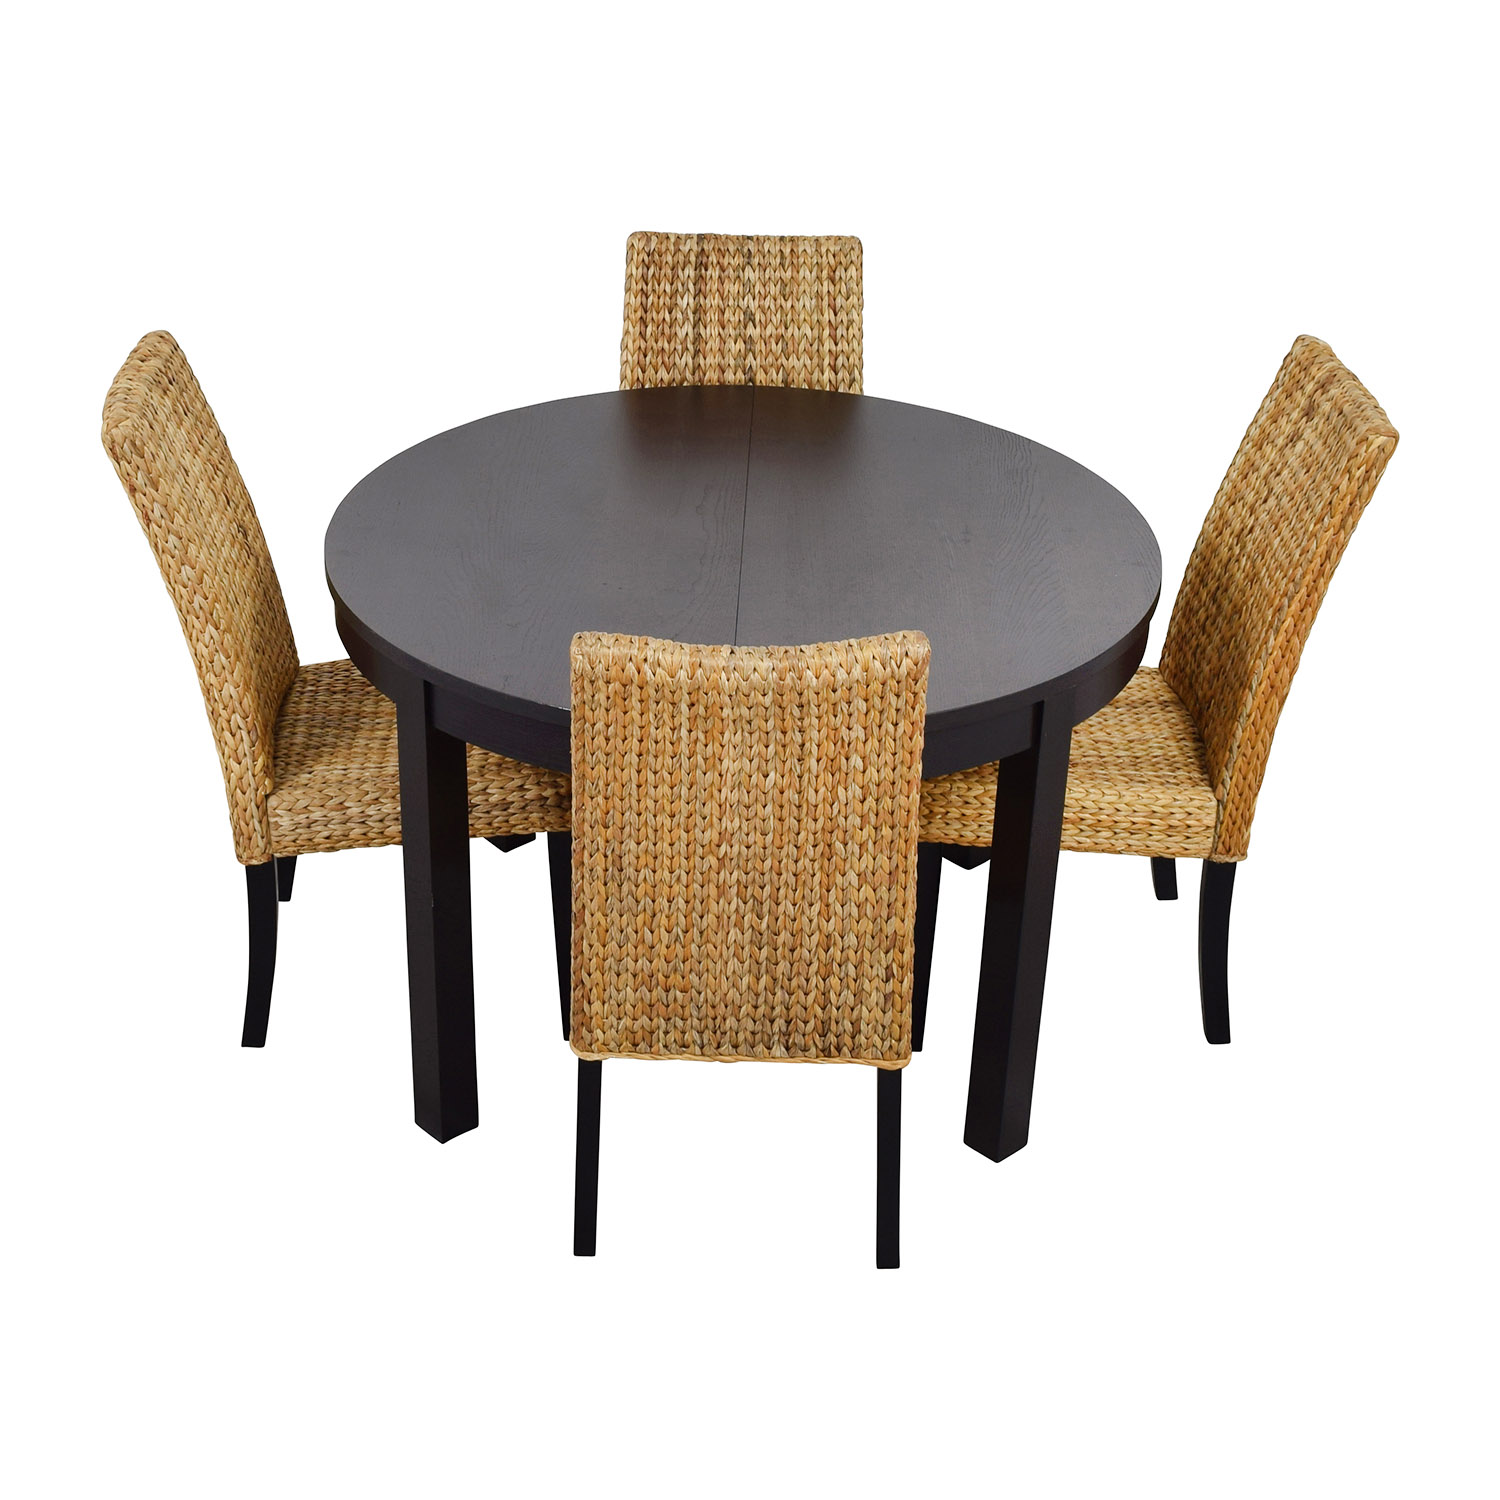 Dining Set Round Table: Round Black Dining Table Set With Four Chairs